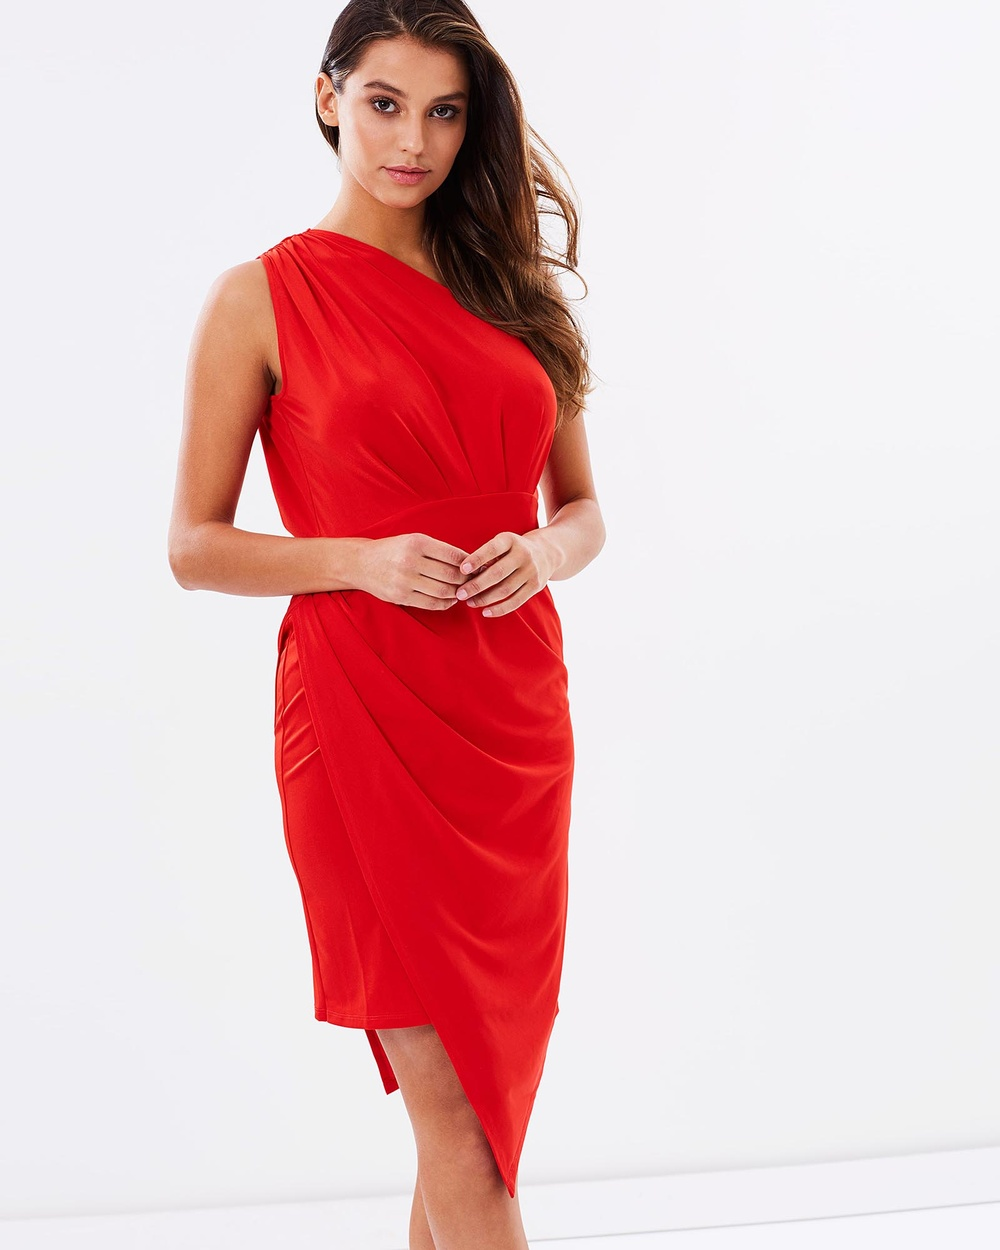 SKIVA One Shoulder Asymmetrical Dress Dresses Red One Shoulder Asymmetrical Dress